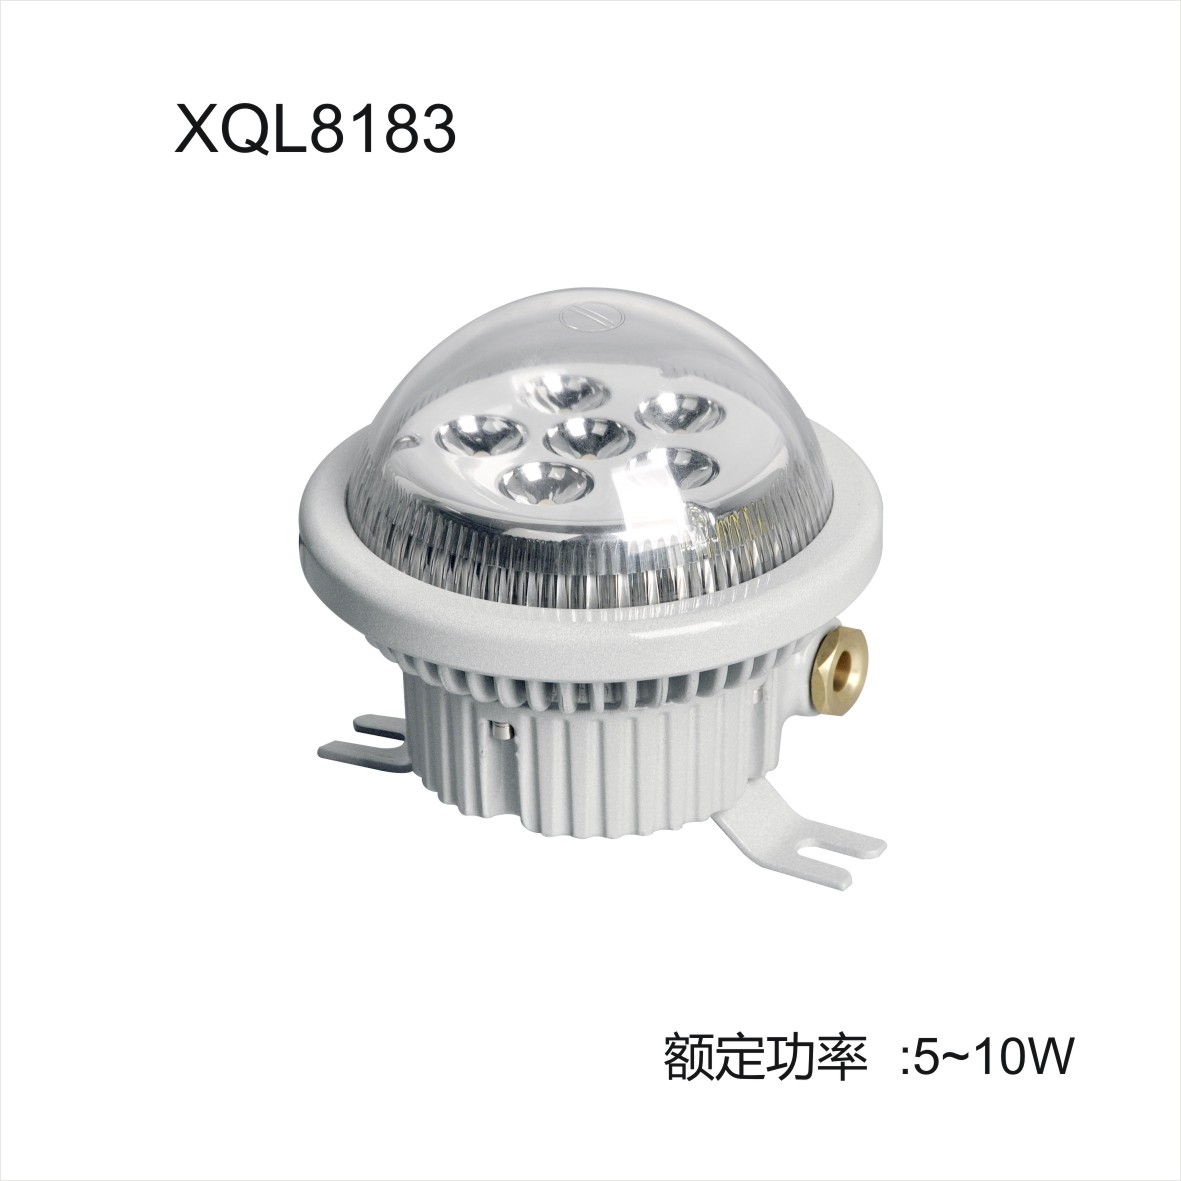 Explosion proof LED lighting used for gas and oil station